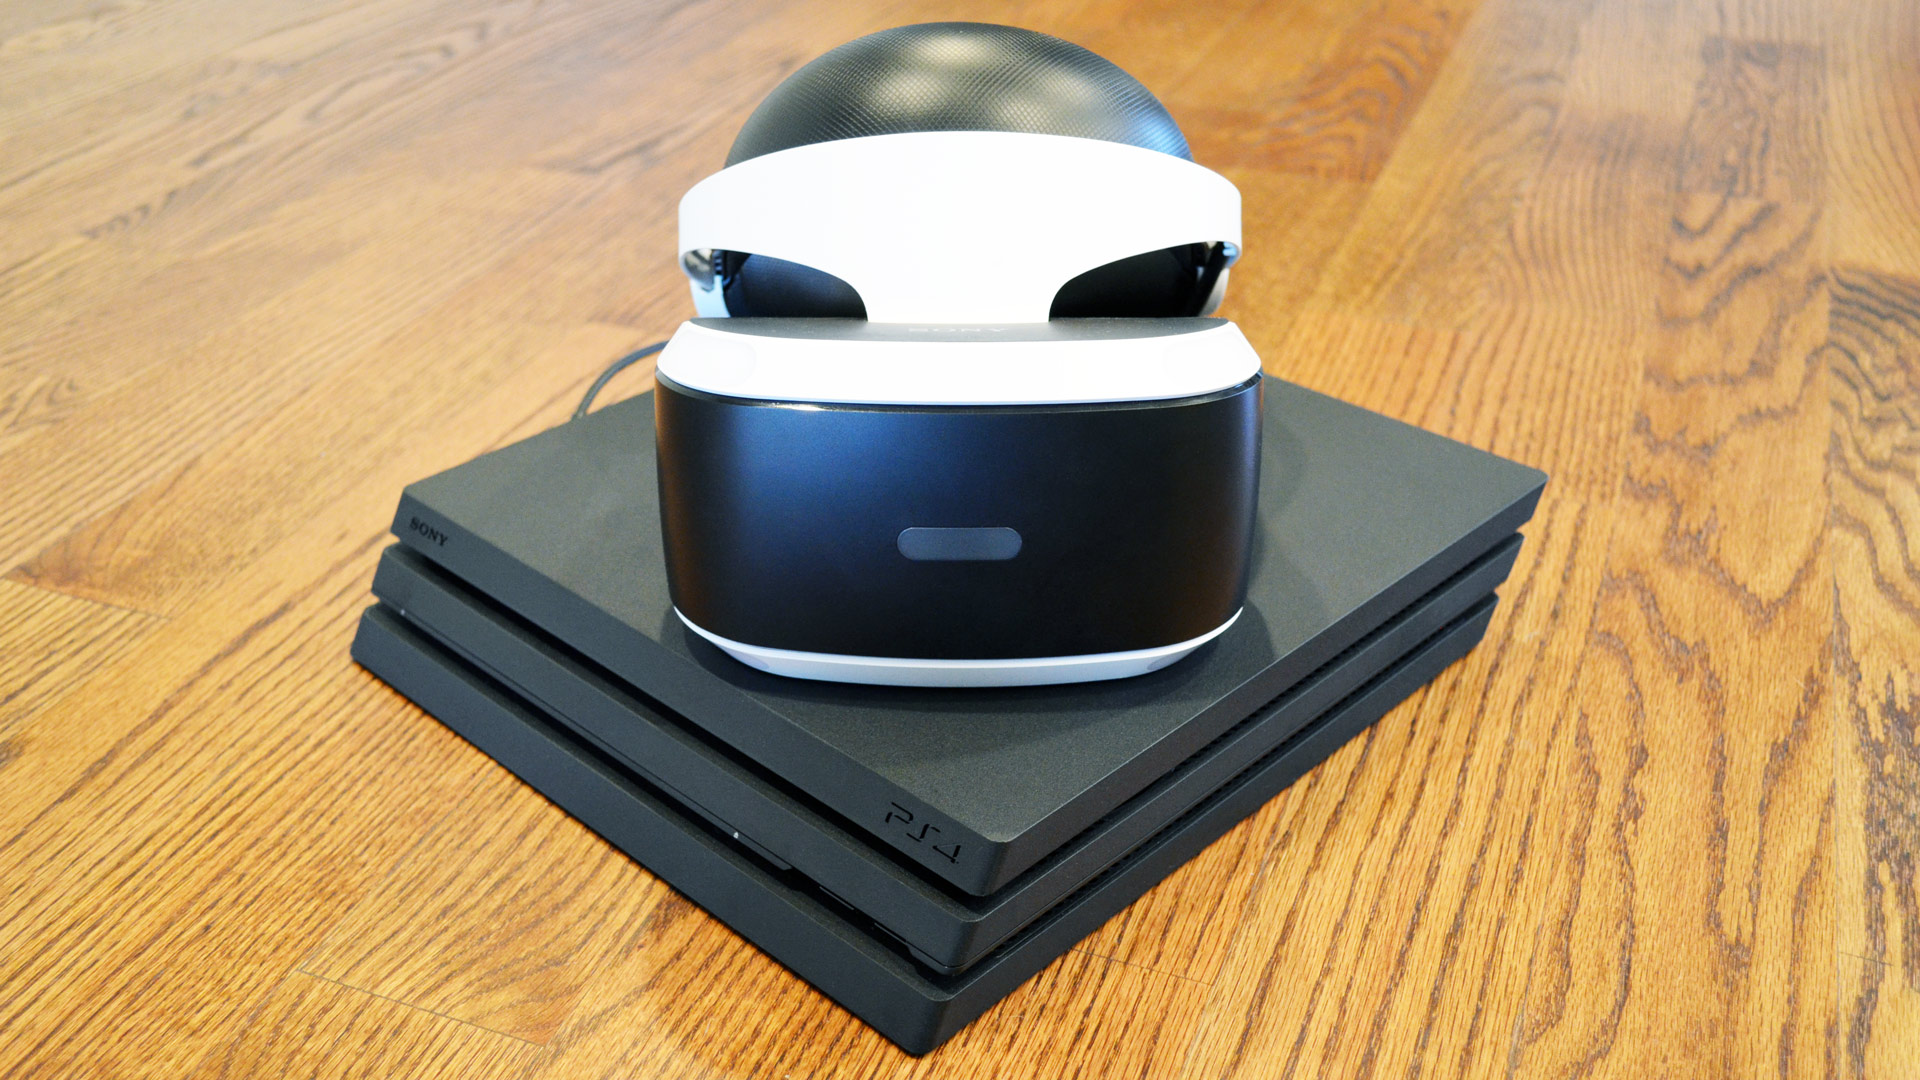 Next Gen Playstation Console Ps5 Will Support Psvr Sony Confirms